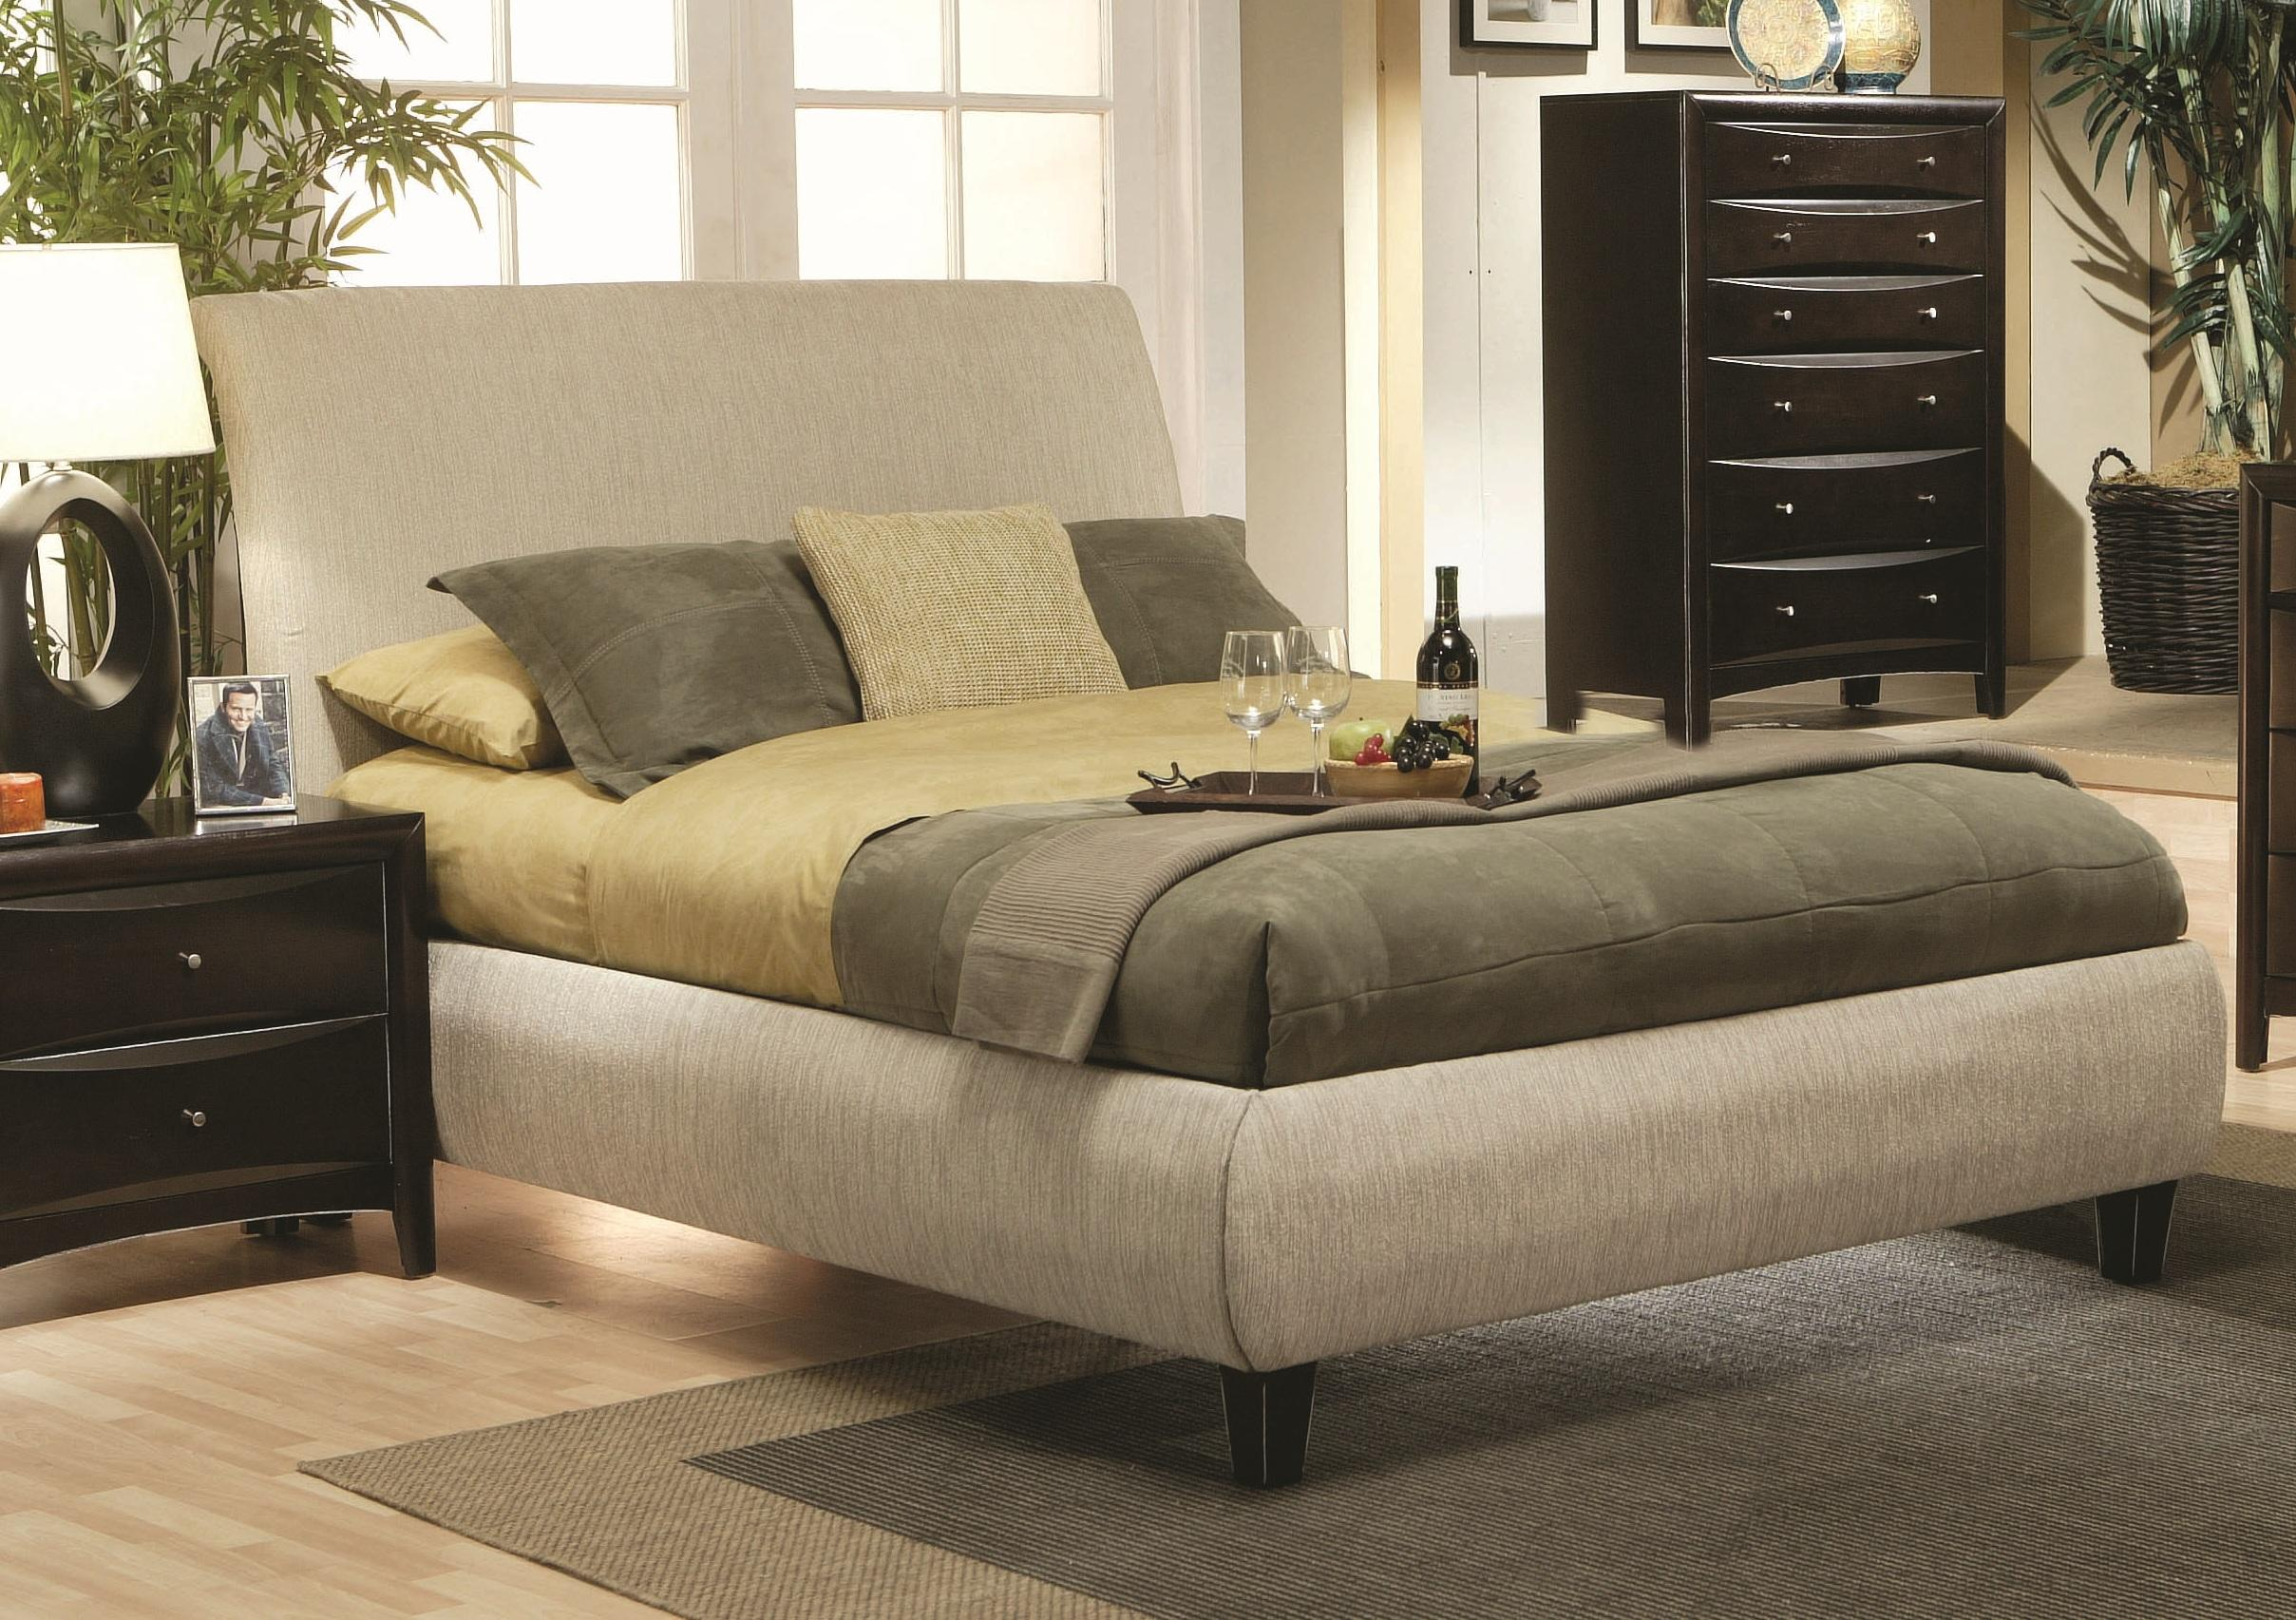 Phoenix Upholstered Bed Size:California King   Walmart.com